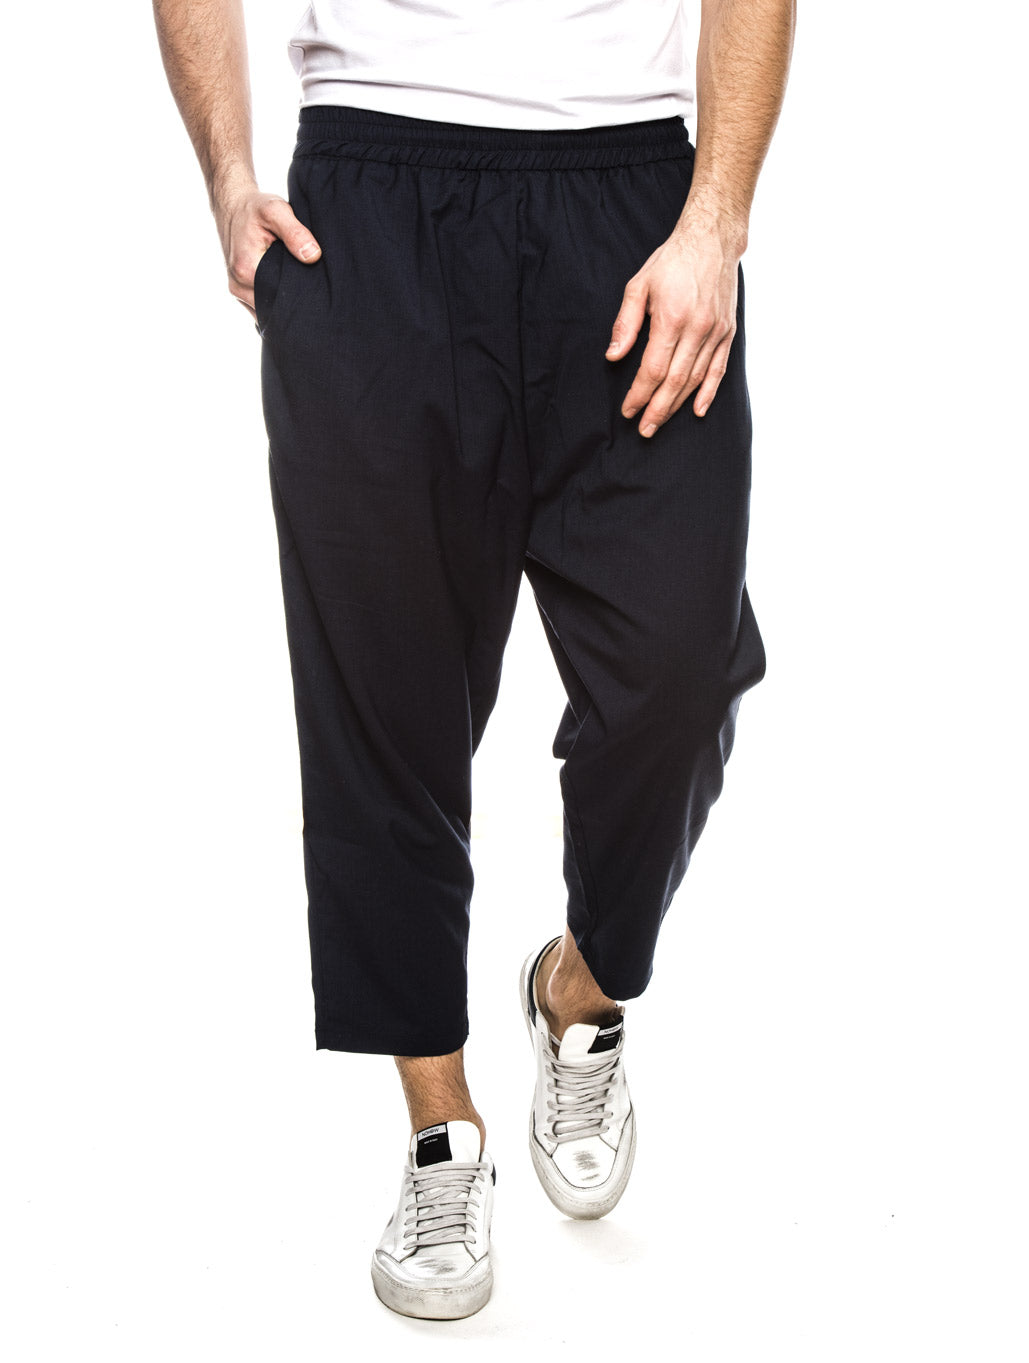 JOG PANT IN NAVY